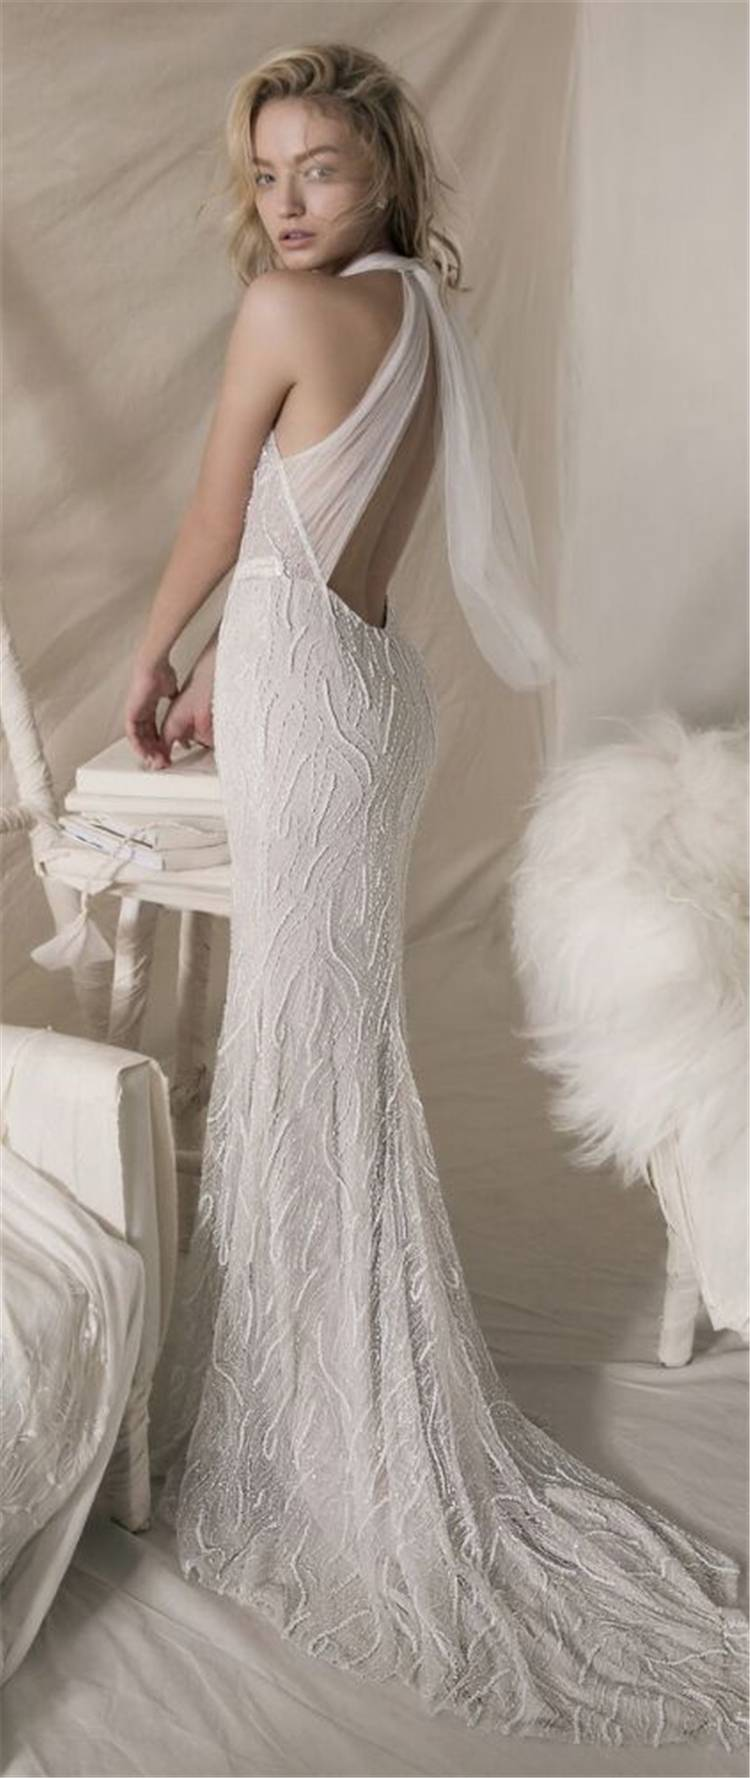 Gorgeous And Breath Taking Mermaid Wedding Dresses You Are Worth It; Gorgeous Wedding Dress; Breath Taking Wedding Dress; White Wedding Dress; Brand Wedding Dress; Off The Shoulder Lace Wedding Dresses; Lace Long Sleeves Wedding Dress; Mermaid Wedding Dress; Mermaid; #wedding #weddingdress #mermaiddress #mermaidweddingdress #gorgeousweddingdress #laceweddingdress